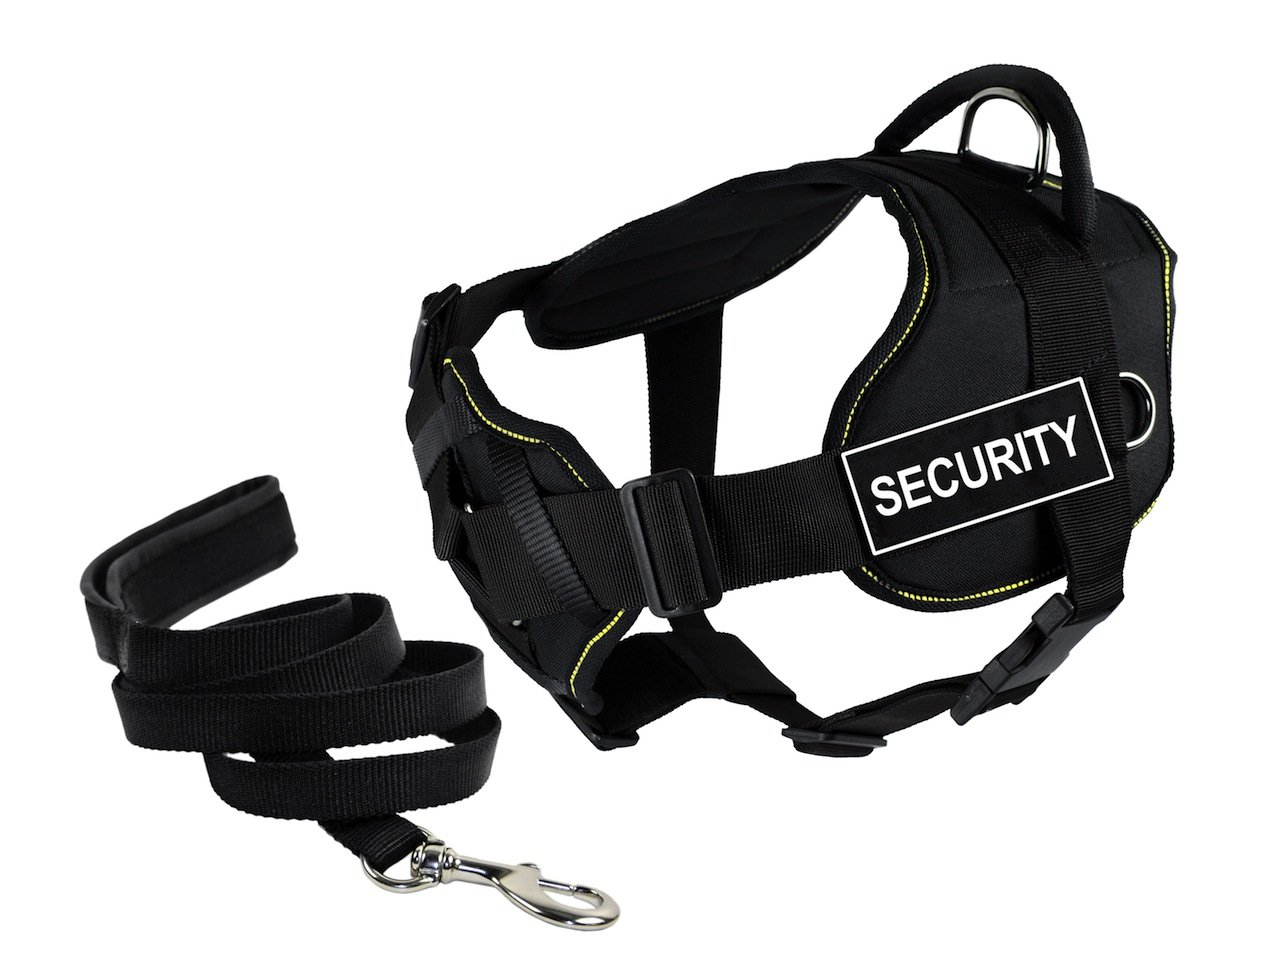 Dean & Tyler's DT Fun Chest Support SECURITY Harness, Medium, with 6 ft Padded Puppy Leash.